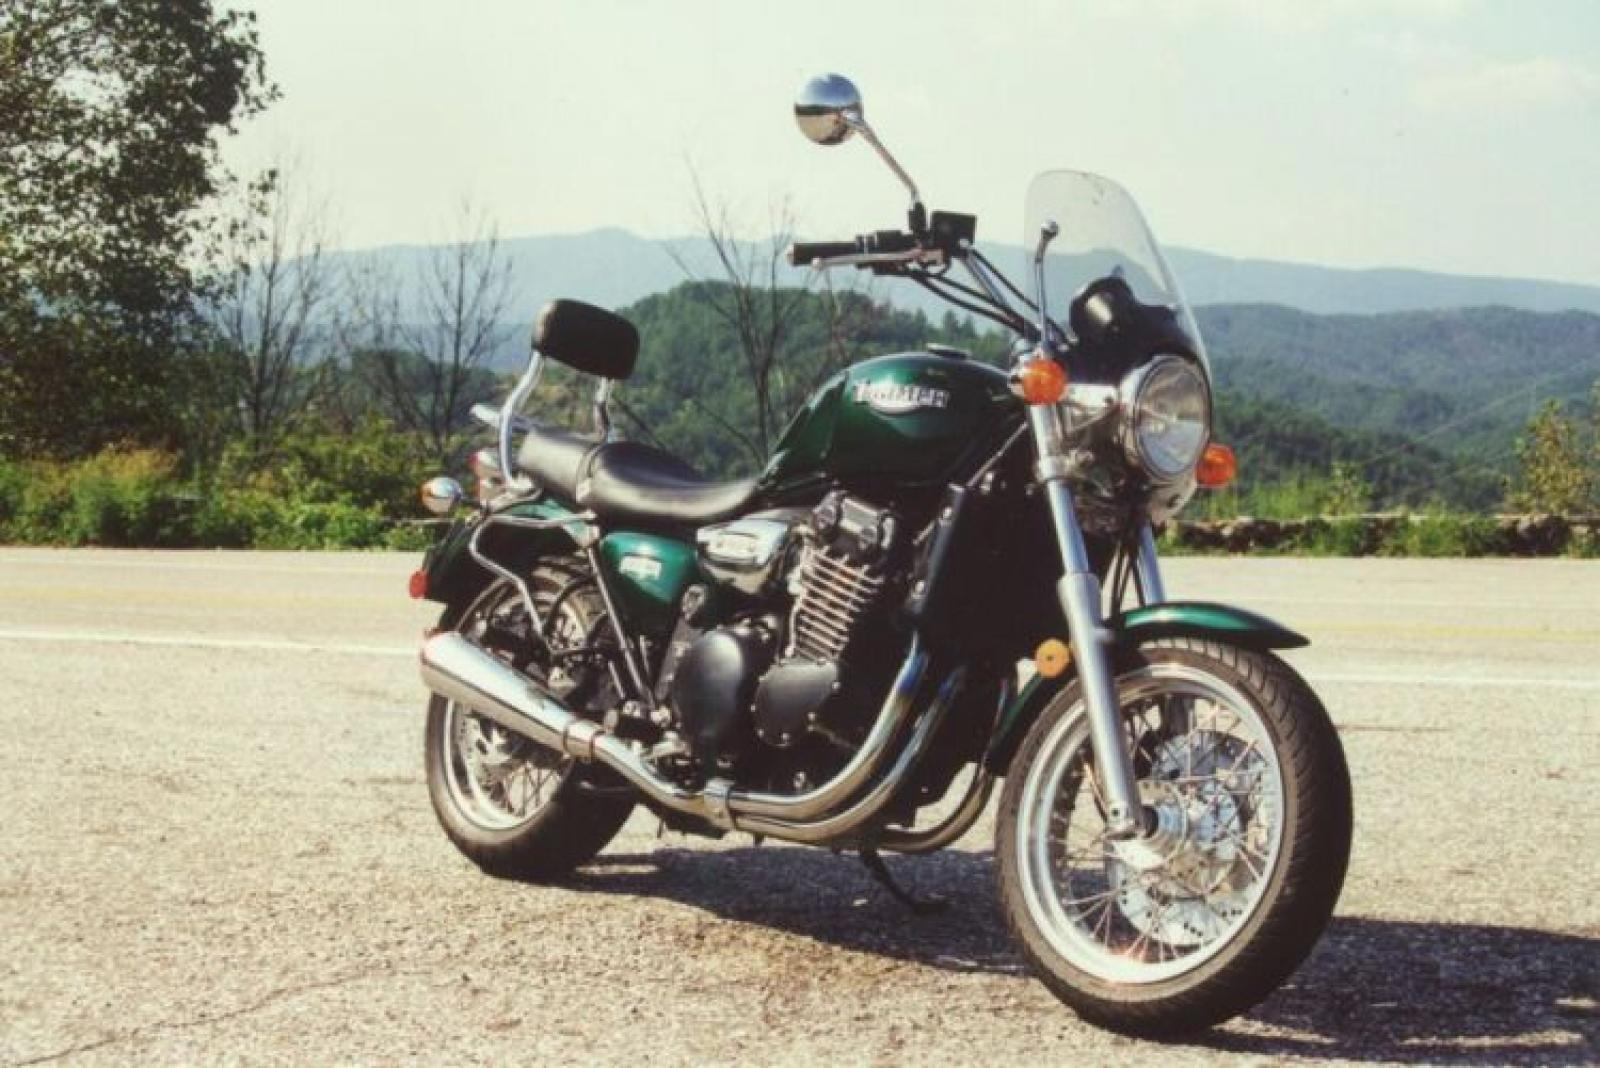 Triumph Legend TT 1999 images #159301